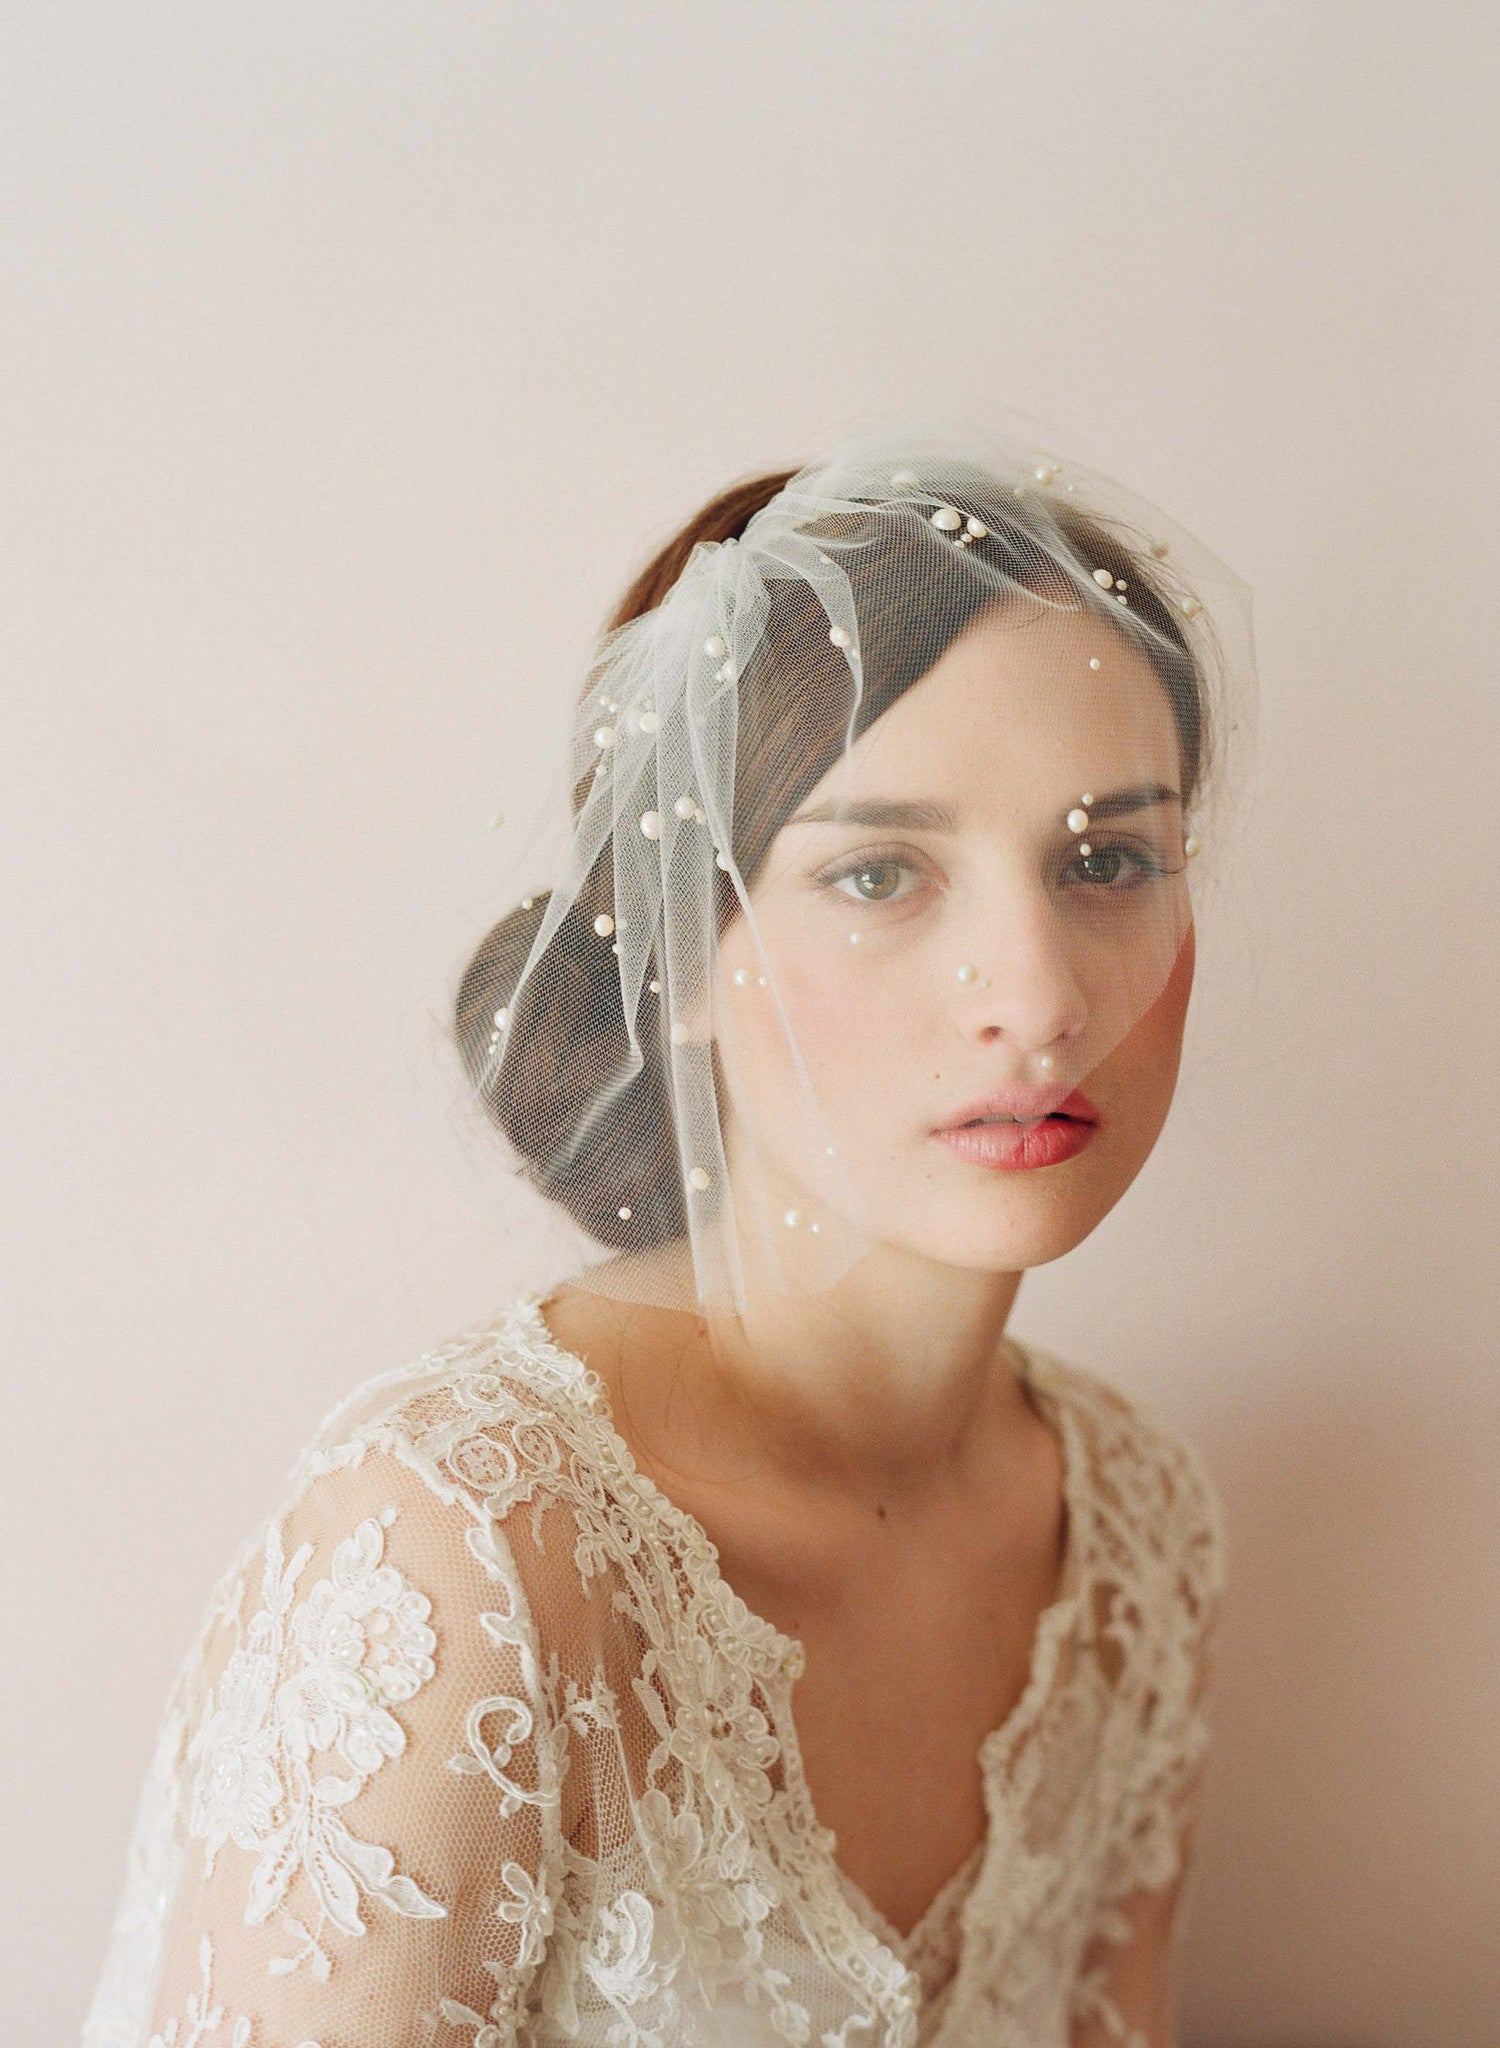 Mini tulle veil with pearls - Style # 212